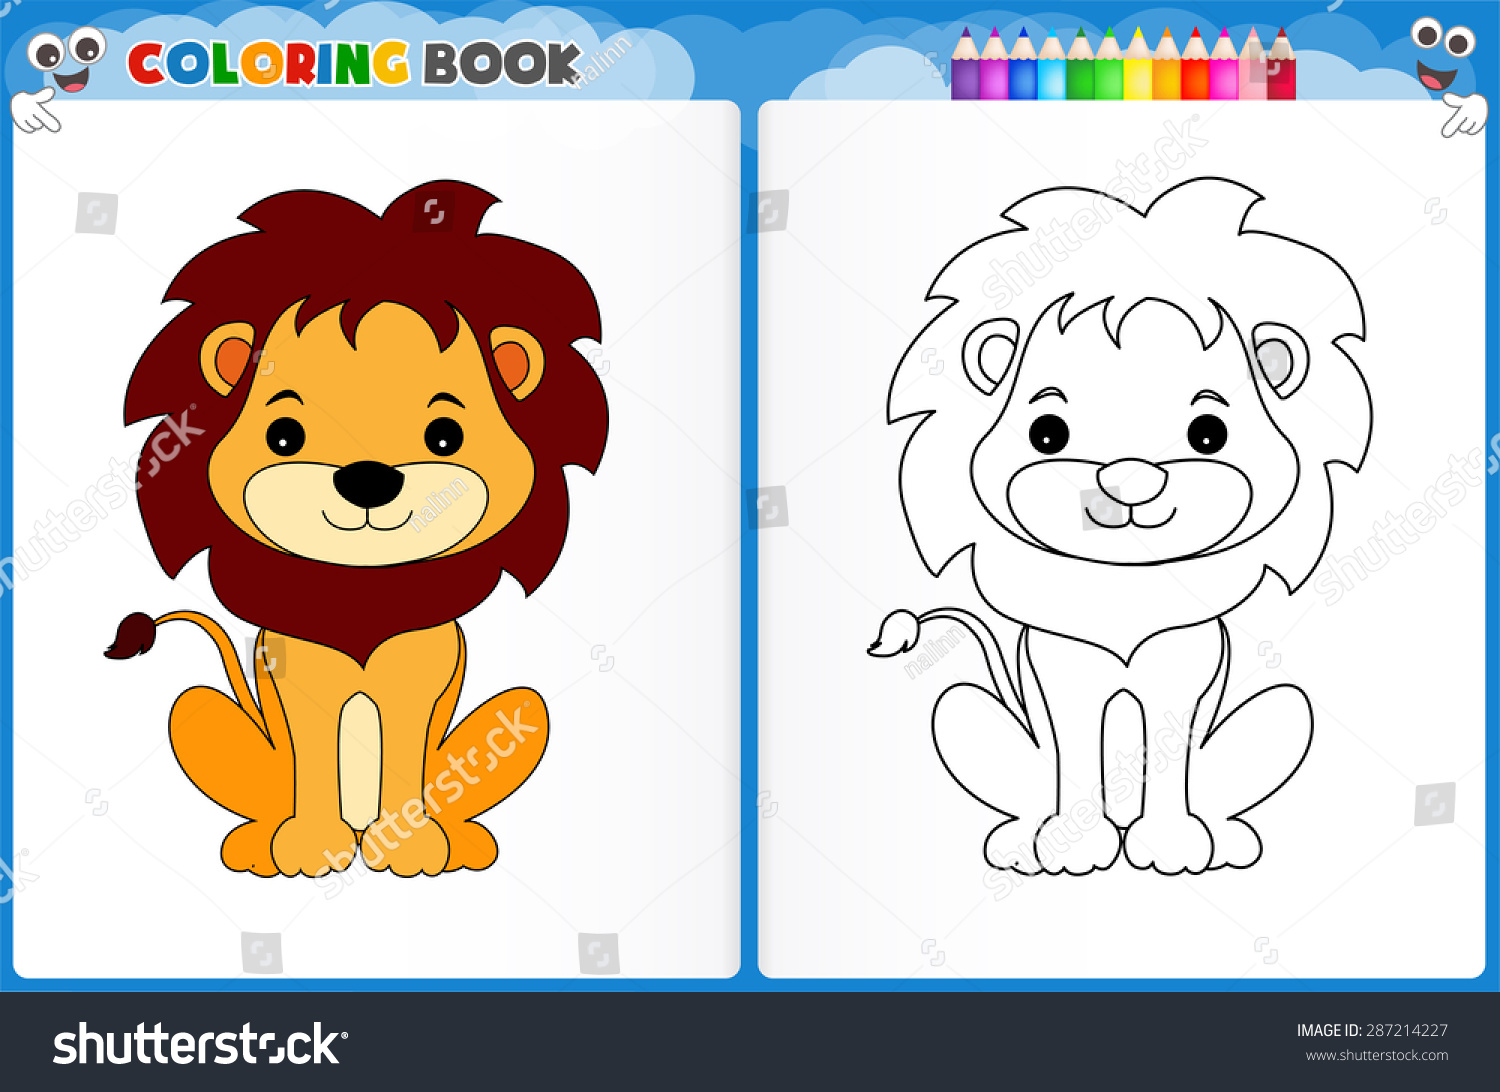 coloring page cute lion colorful sample stock vector 287214227